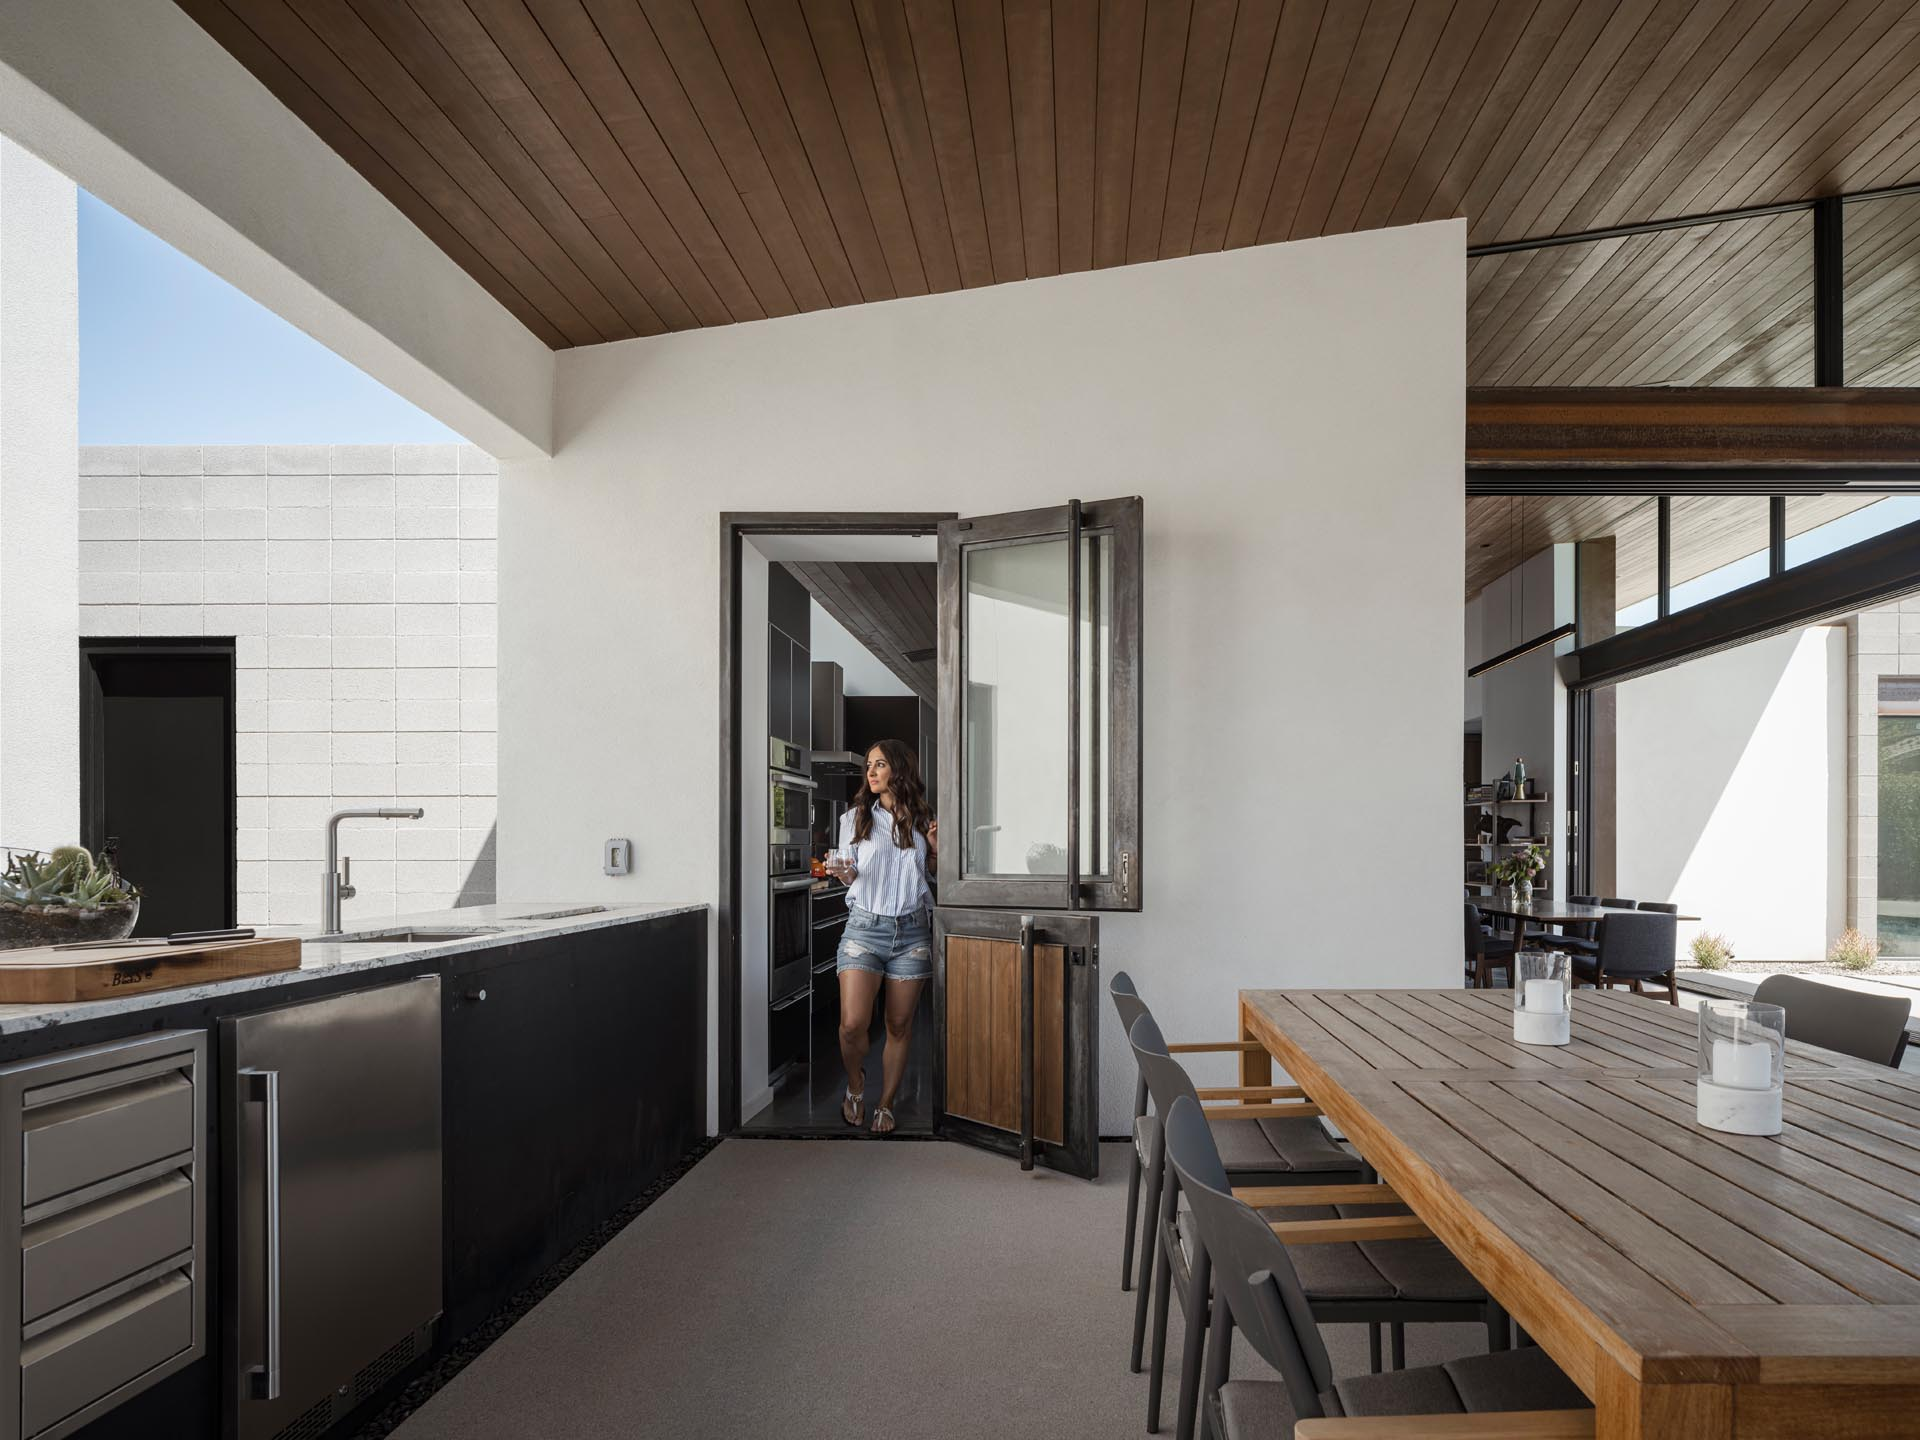 This modern covered patio includes a fireplace that is also used for cooking, built-in benches that flank the fireplace, an outdoor kitchen and dining area, a lounge area, and a customized screen with their family emblem.